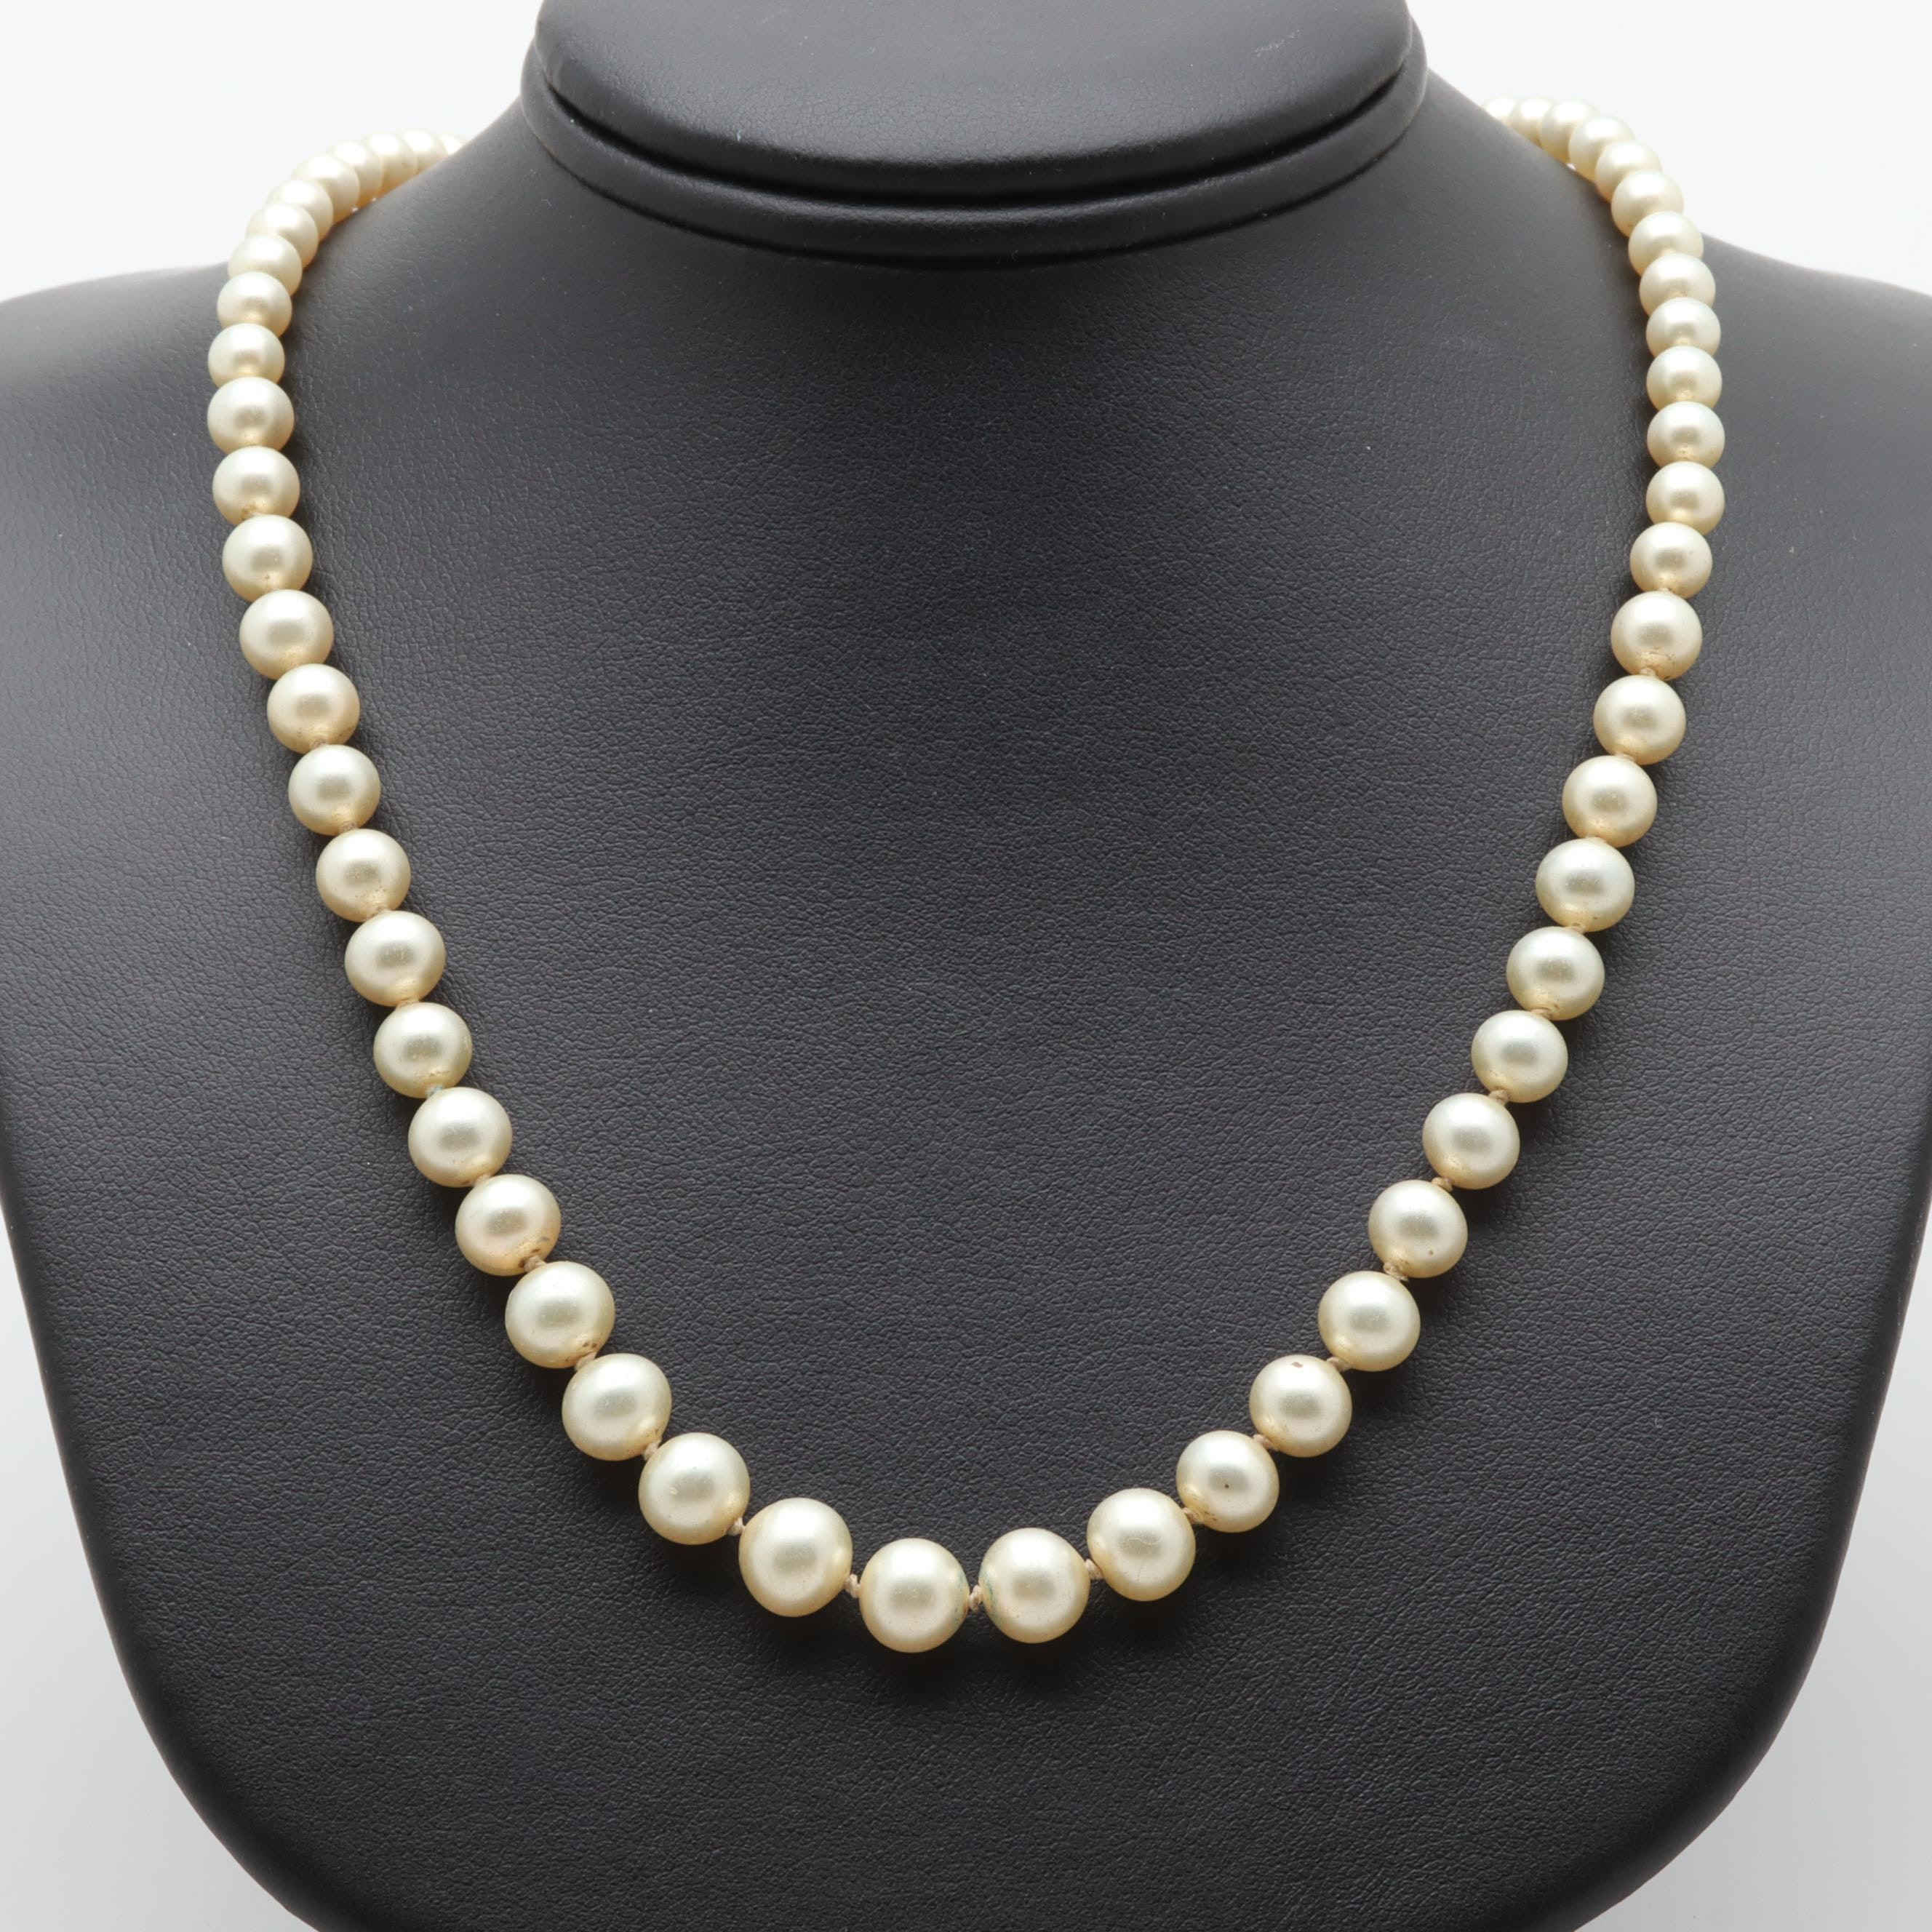 10K White Gold Imitation Pearl Beaded Necklace